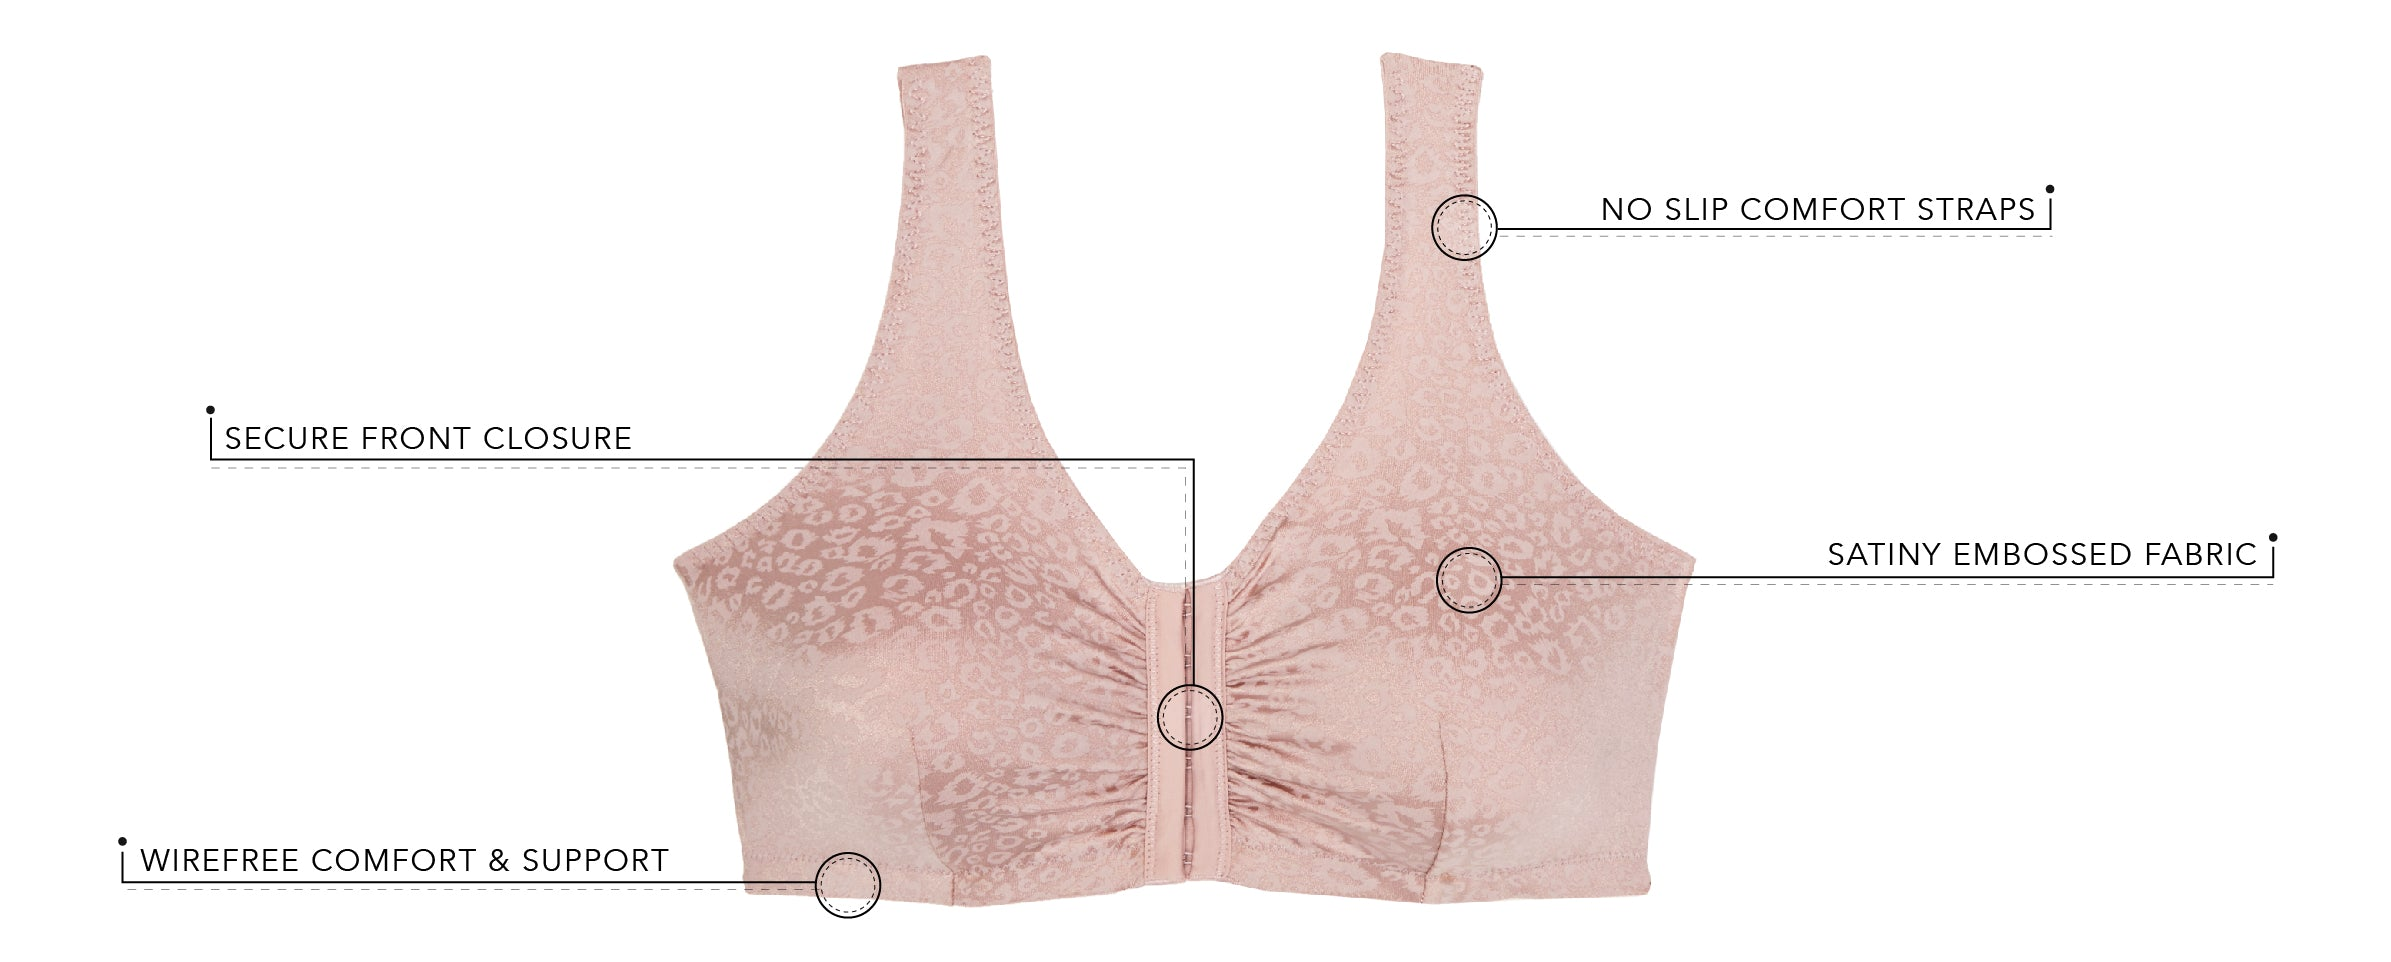 The Lena - Front Closure Leisure Bra | 5420 - Product Detail View